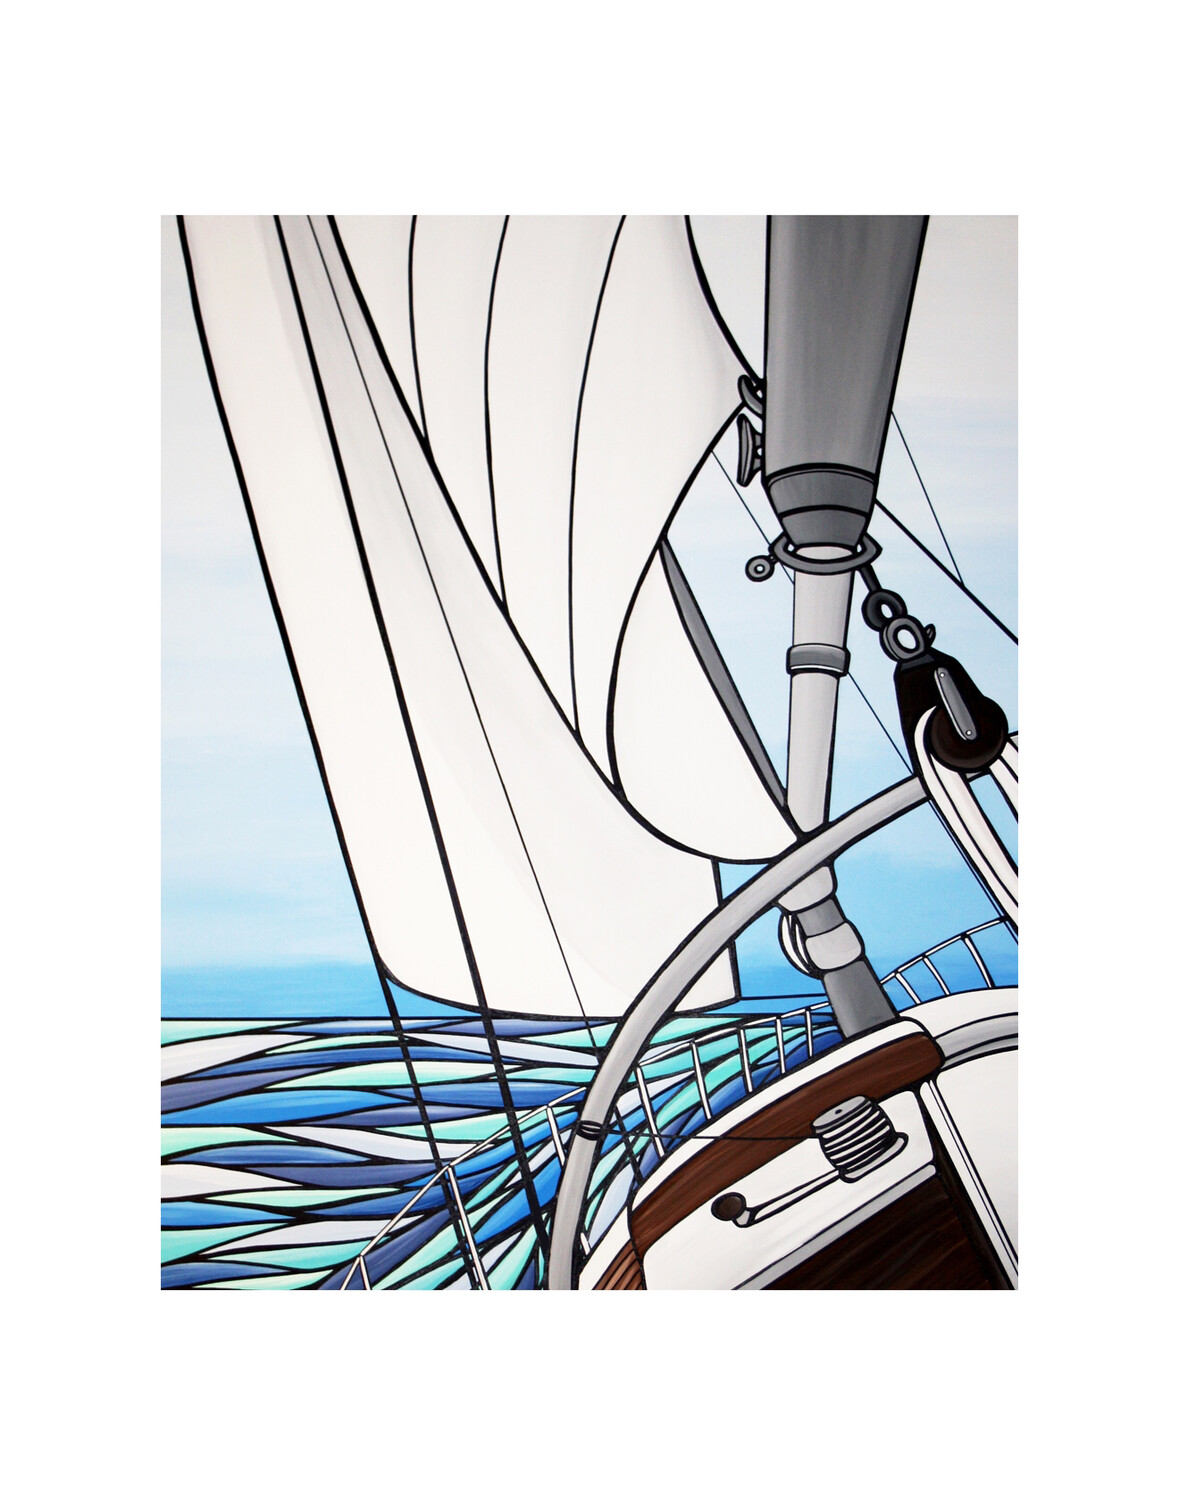 Giclee Print on Canvas- Sunday Breeze